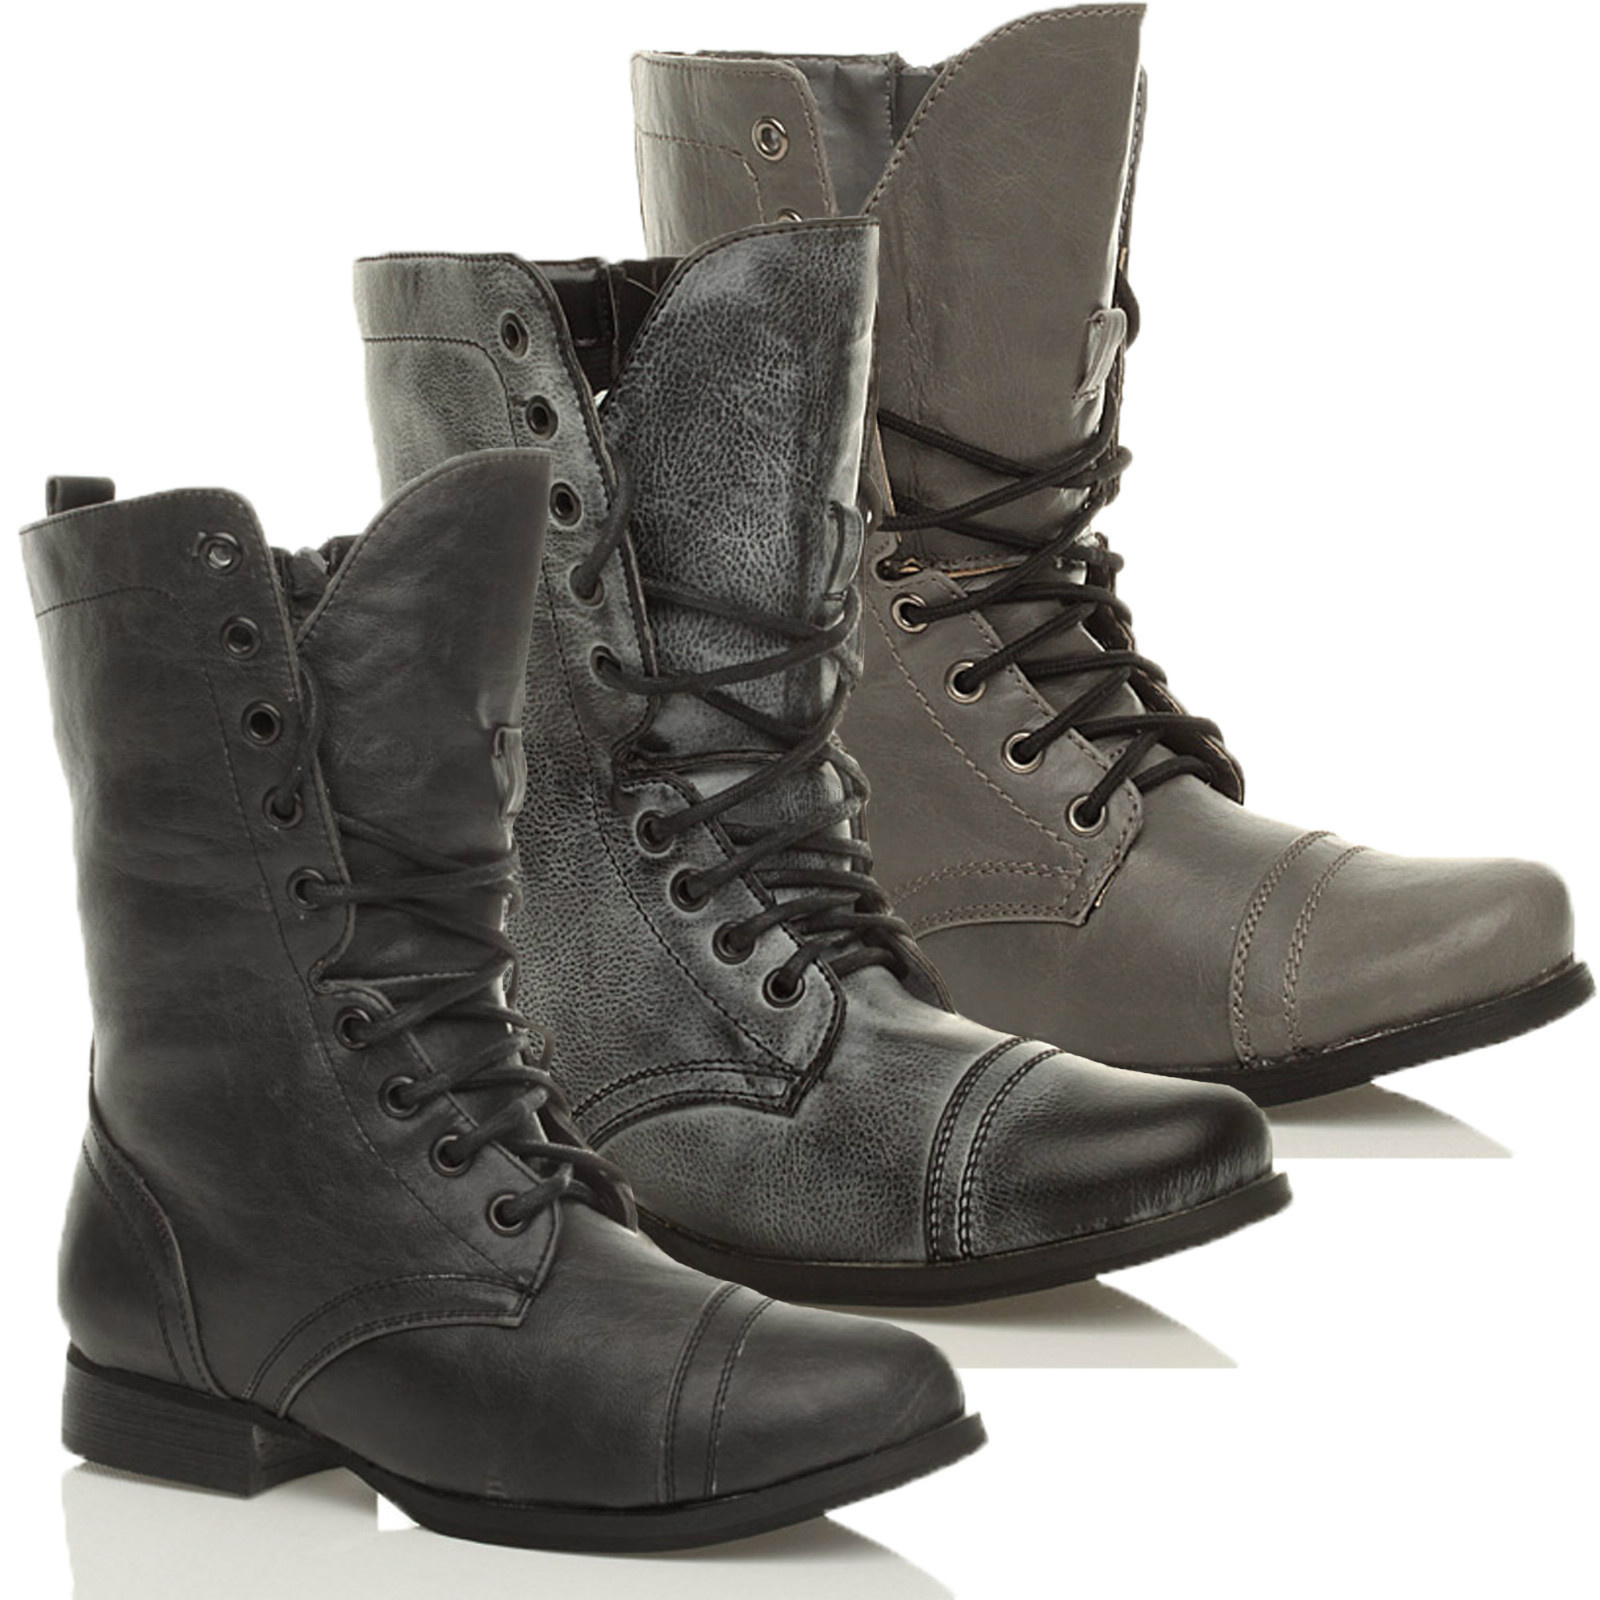 Ajvani Womens Ladies Flat Low Heel lace up Zip Combat Army Military Ankle Boots Size Women Lace up Military Combat Ankle Boots out of 5 stars Womens ladies low heel flat lace up knitted collar cuff zip combat military army ankle boots size4/5.